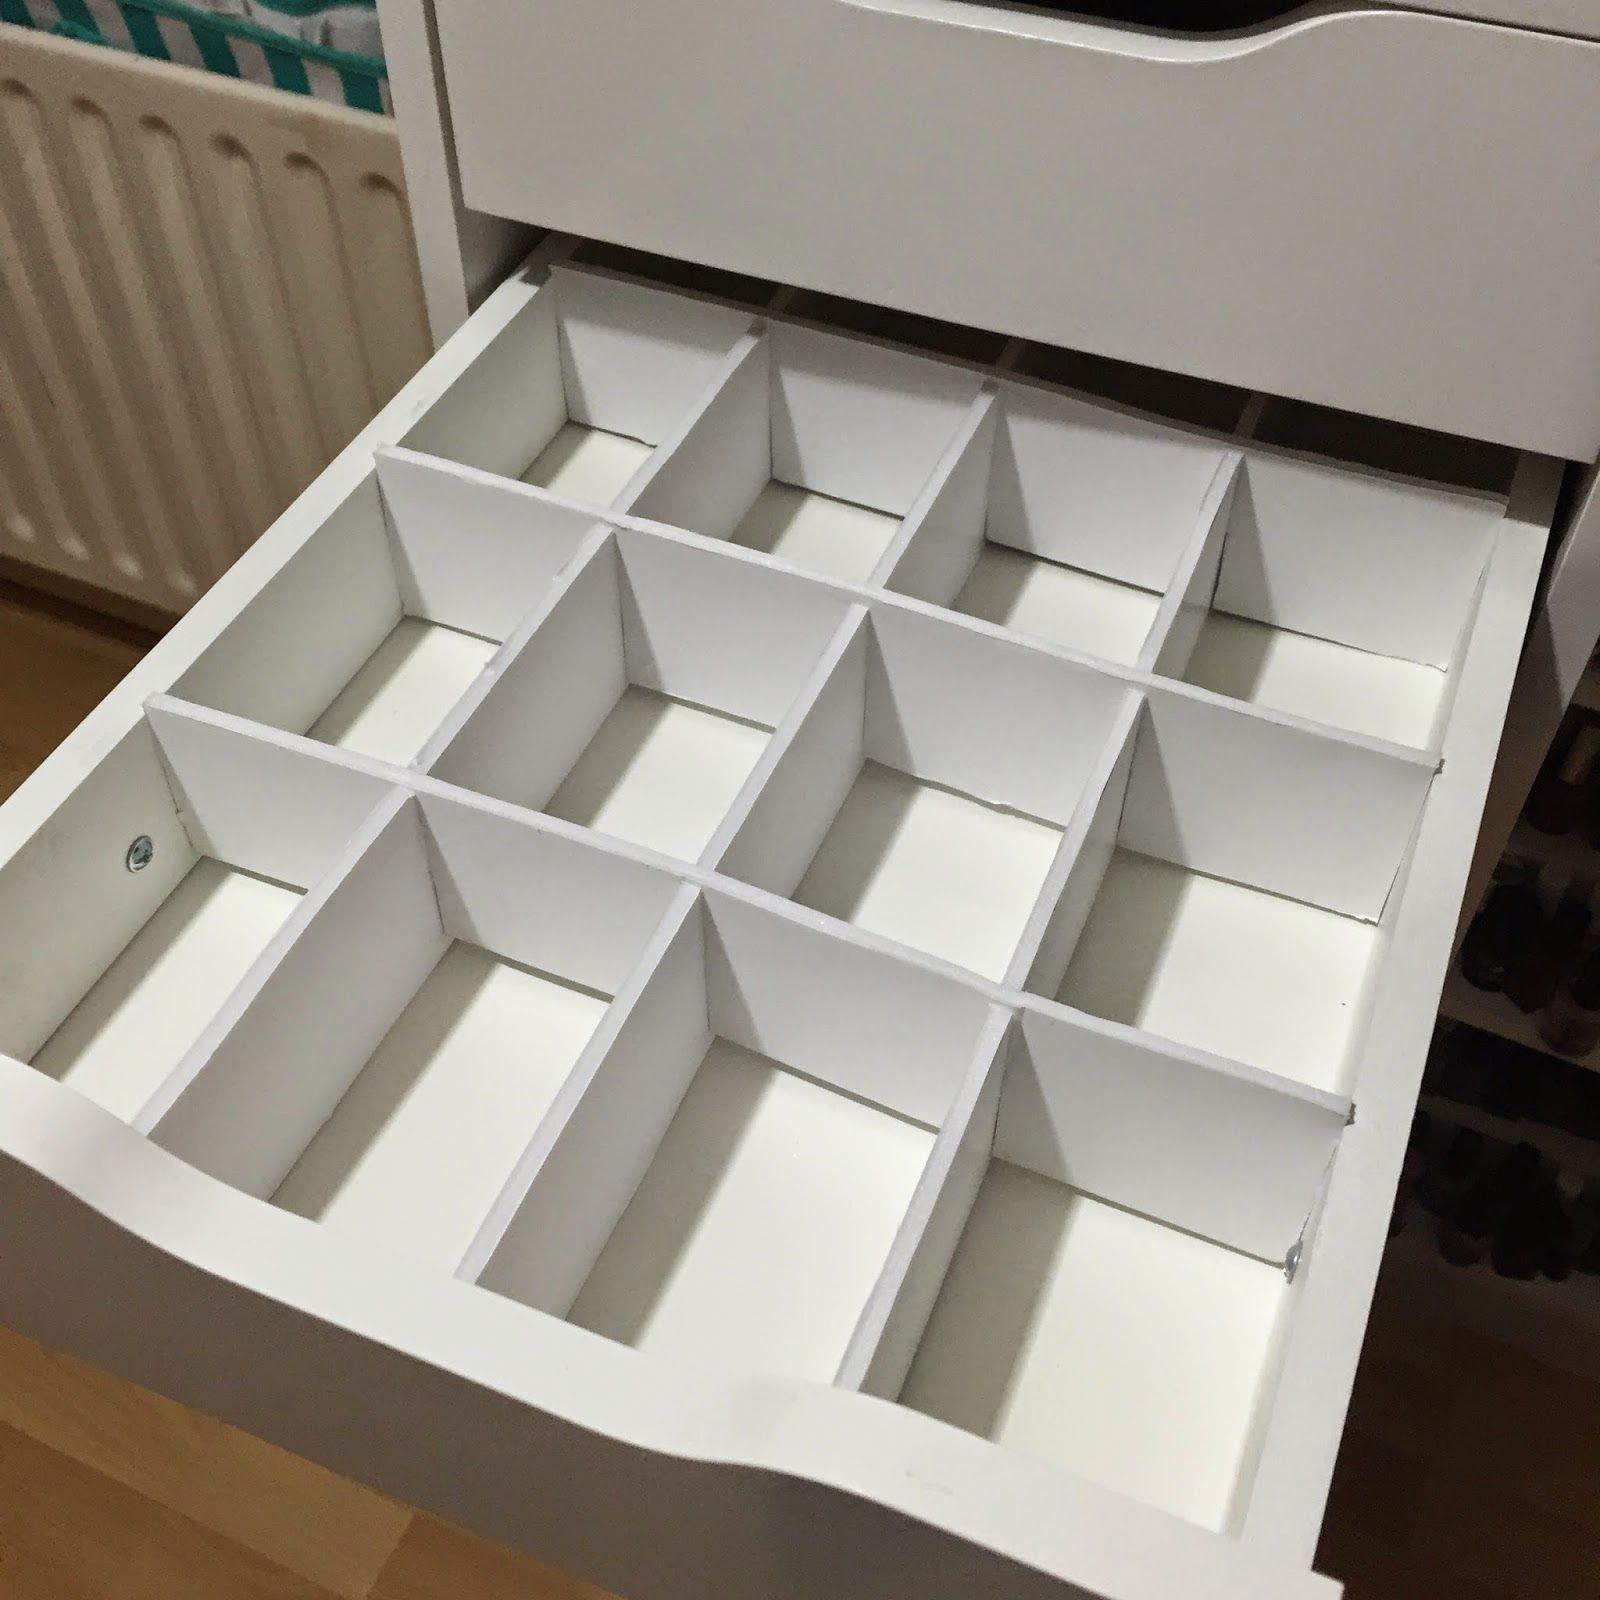 Beau DIY Foamboard Drawer Dividers For Ikea Alex Drawers.  Http://www.totalmakeupaddict